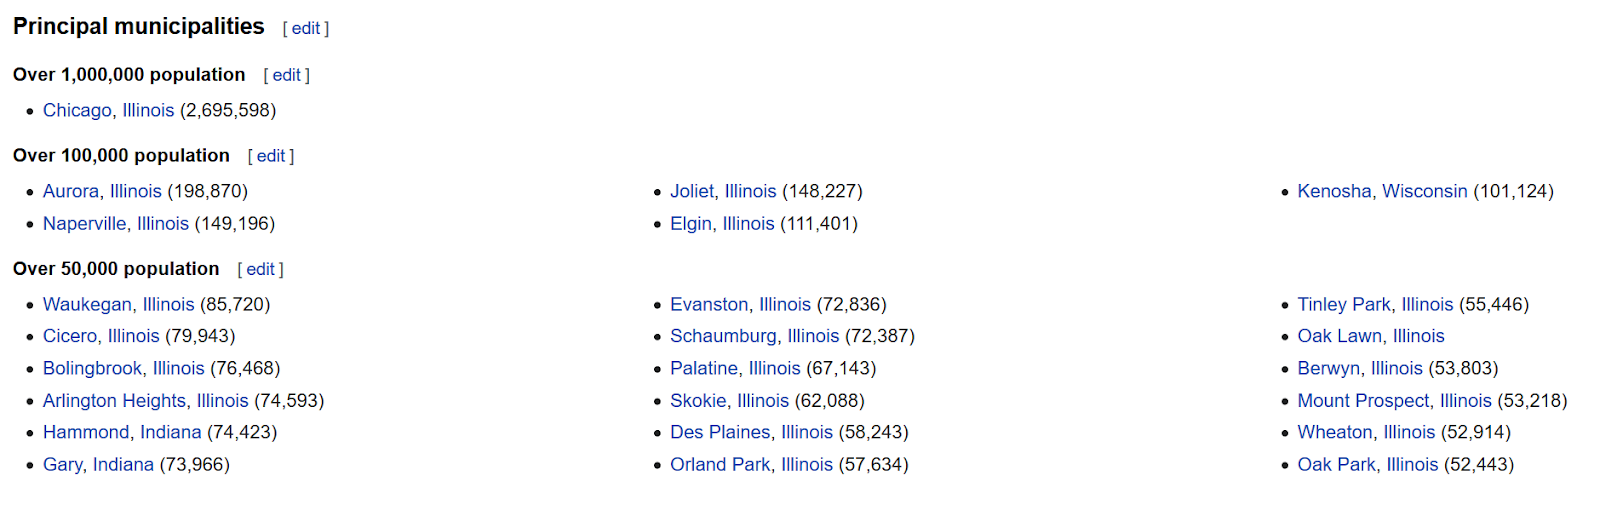 A screenshot of the Wikipedia page for the Chicago metropolitan area